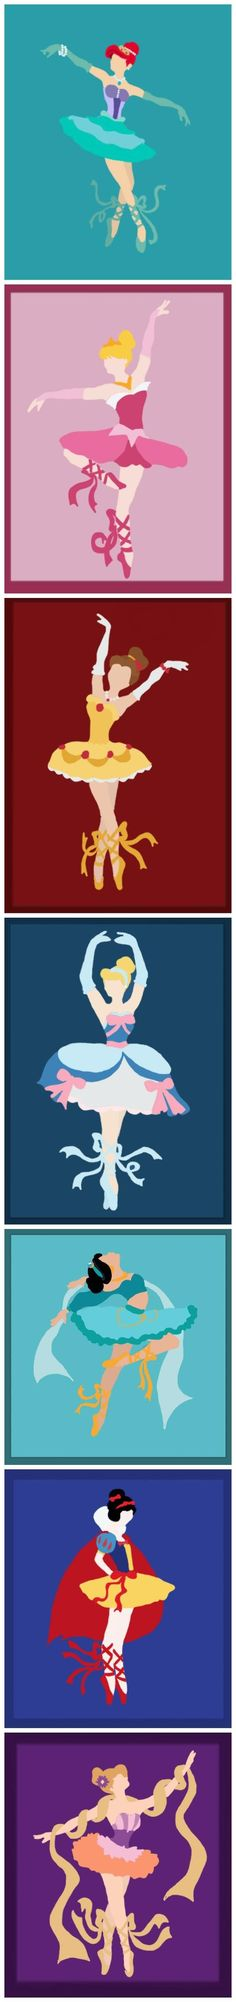 Disney princesses as ballerinas! I love this *^* I wish that I could do pointe, but perhaps I could do a Disney ballerina cosplay with basic ballet shoes Disney Magic, Walt Disney, Cute Disney, Disney Girls, Disney Art, Disney Movies, Disney Characters, Funny Disney, Disney Stuff